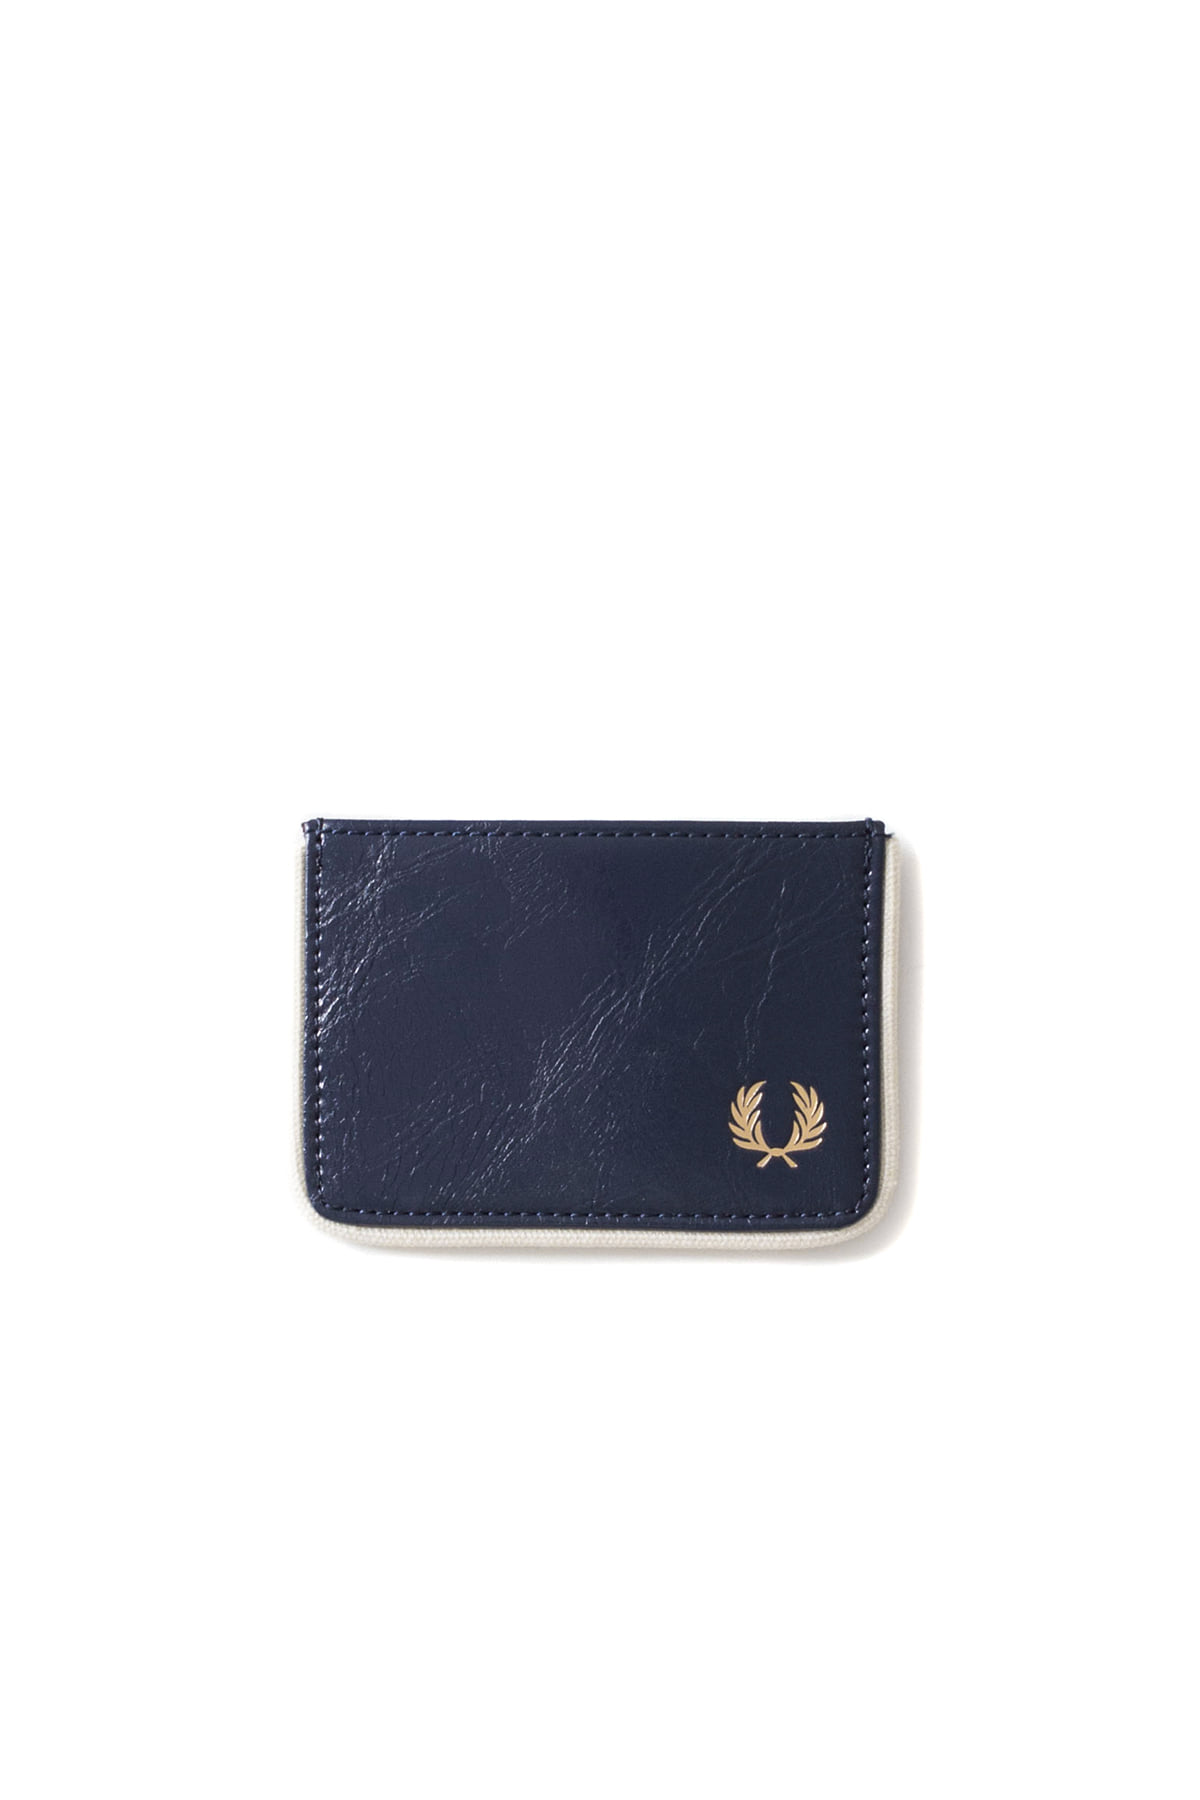 FRED PERRY : Classic Card Holder (Navy / Ecru)